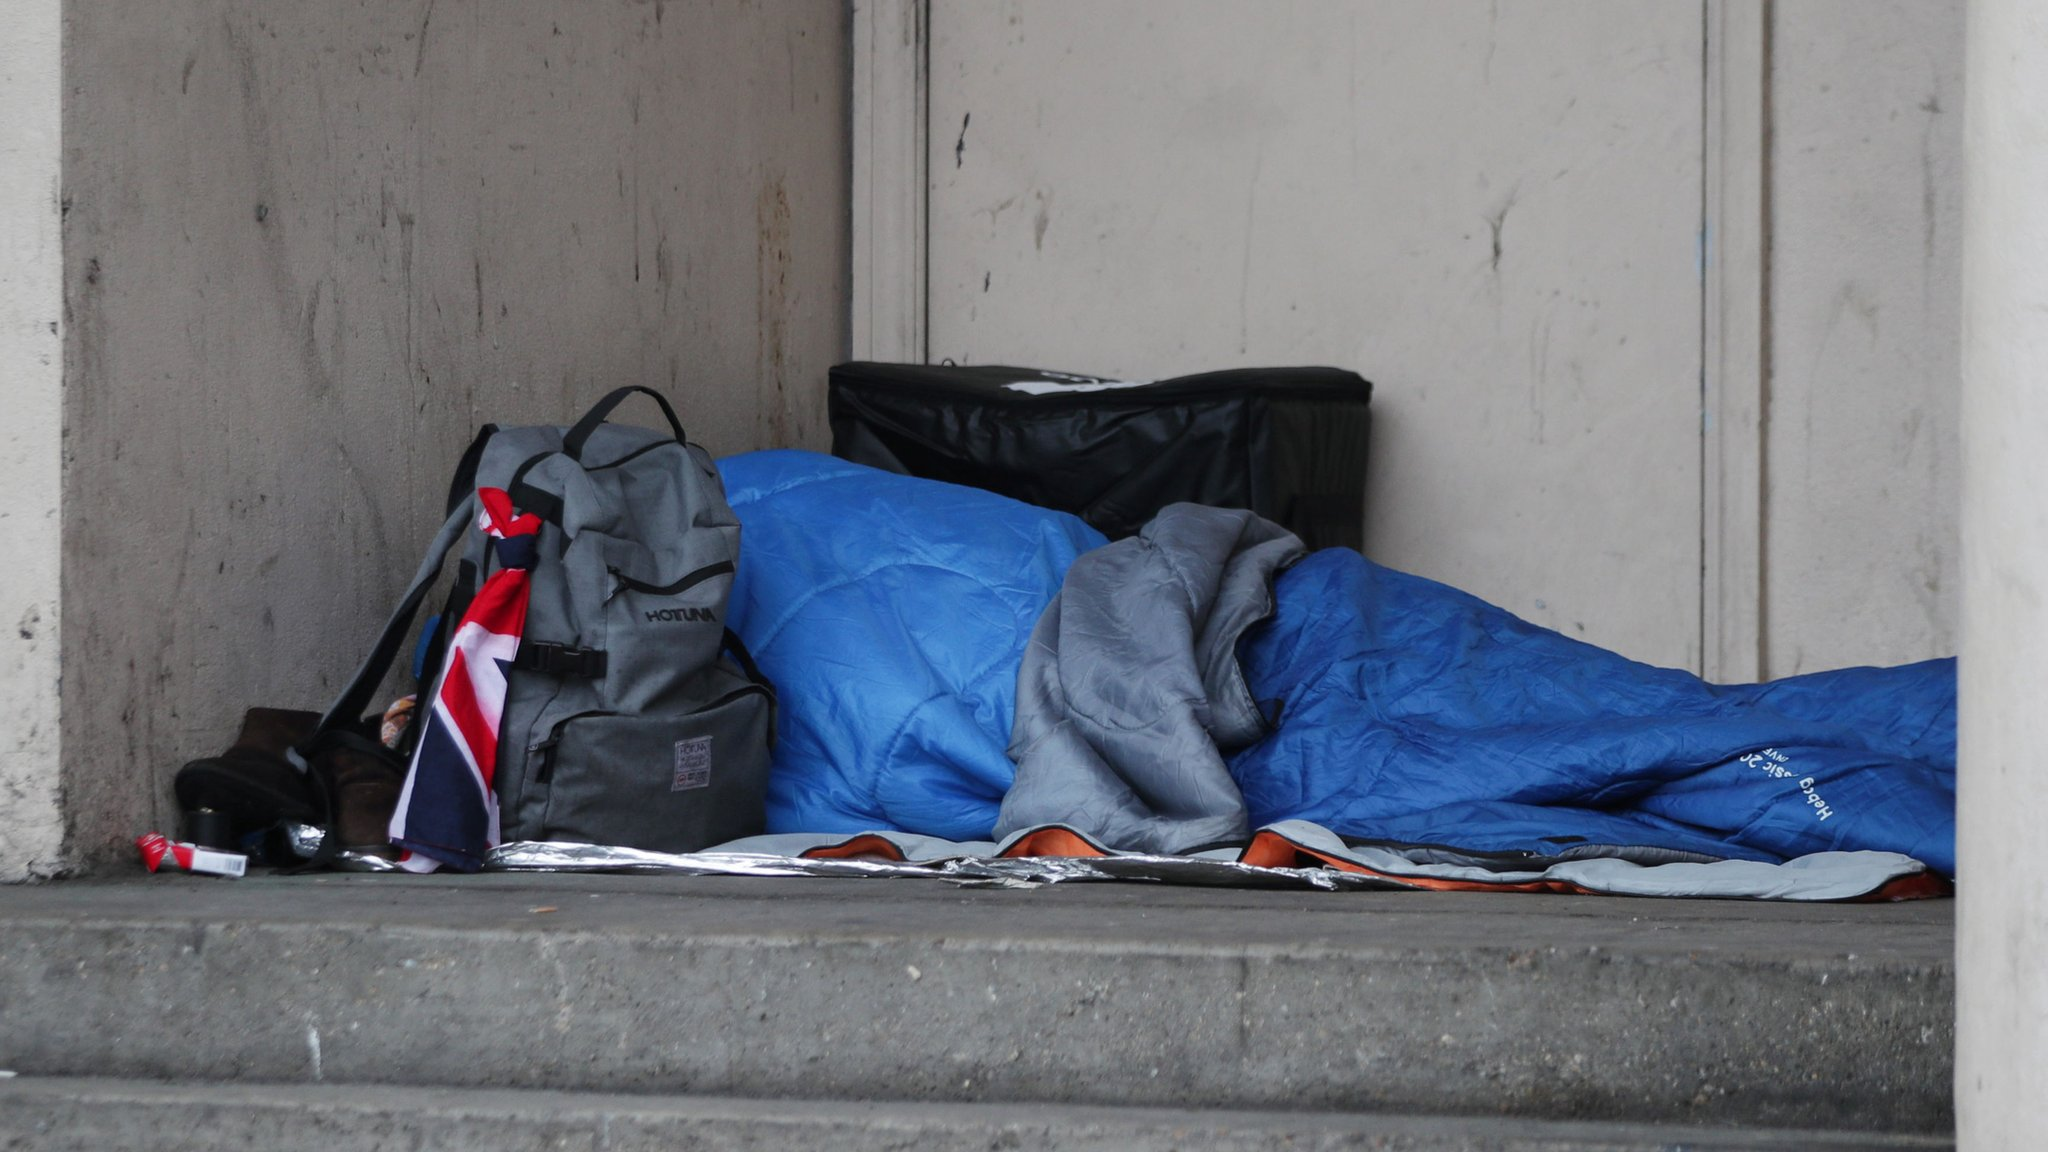 Removing EU rough sleepers from UK unlawful, High Court rules